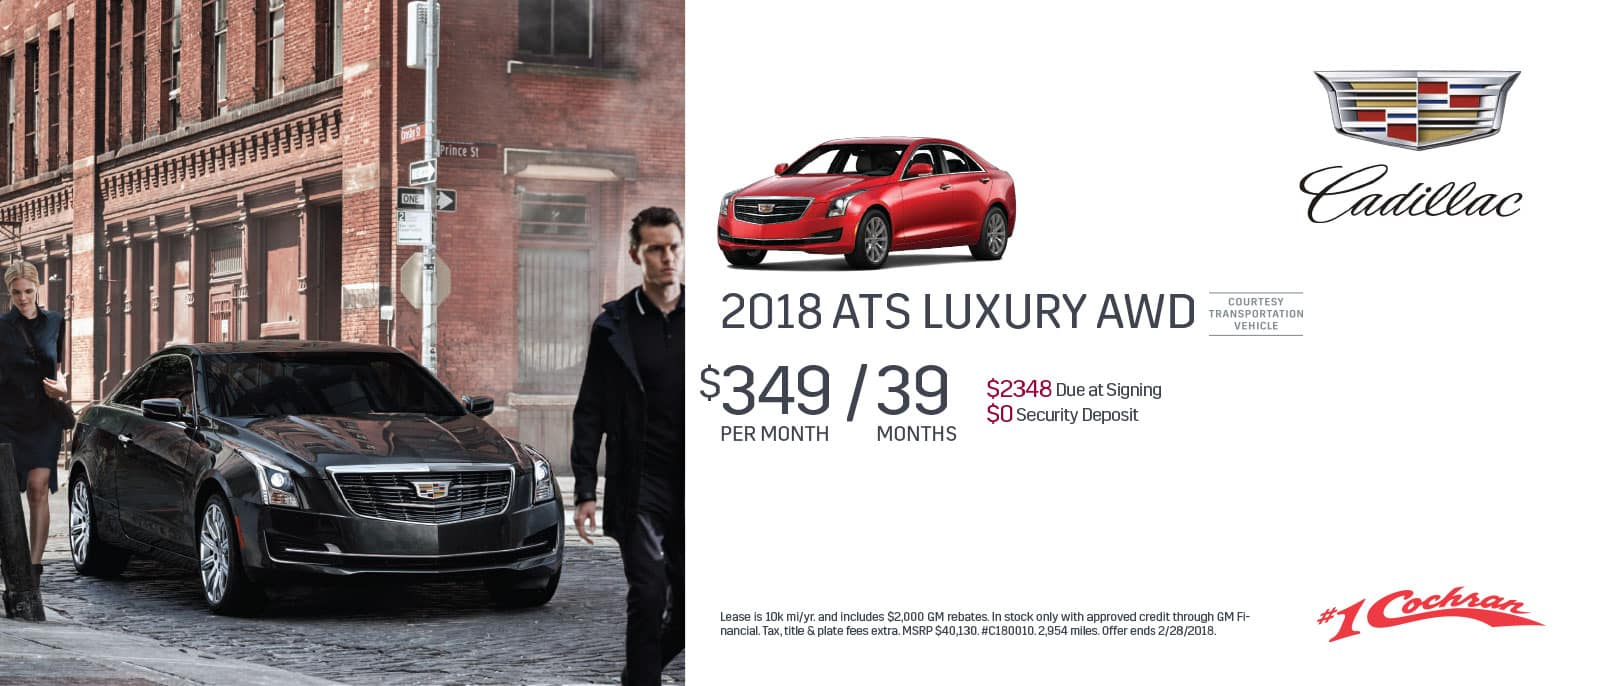 2018 ATS LUXURY AWD